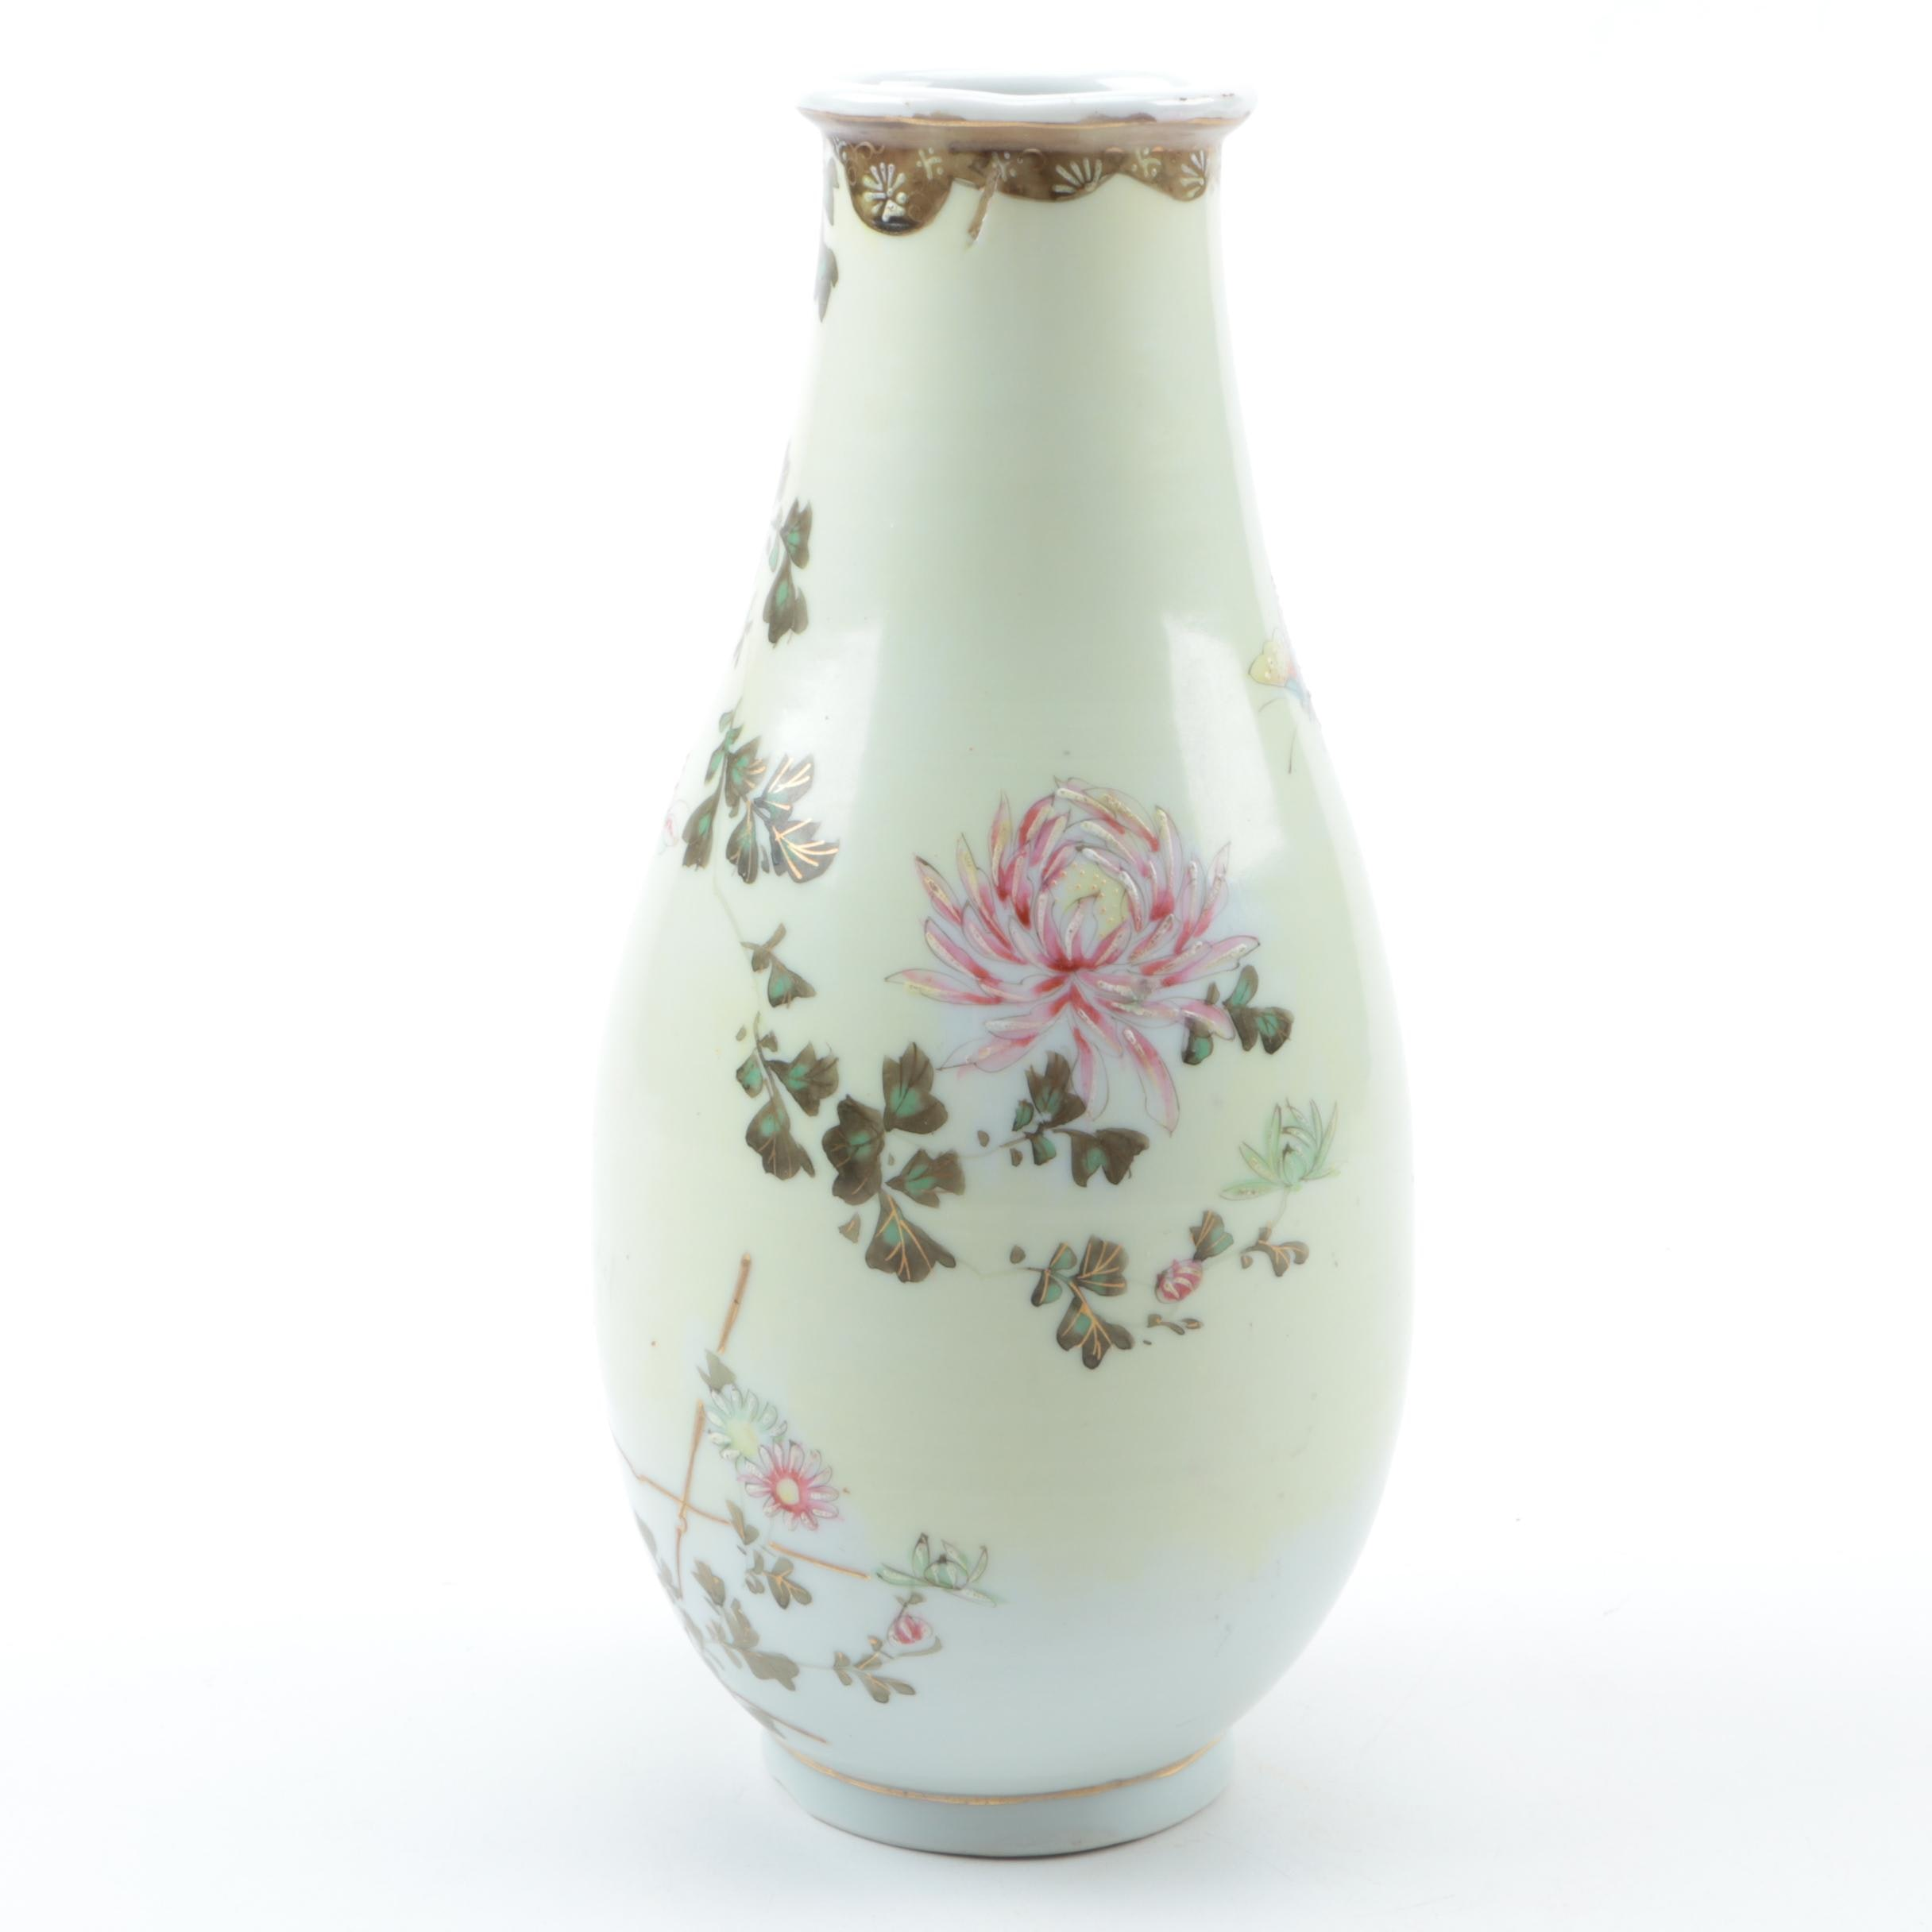 Signed Japanese Hand Painted Porcelain Vase